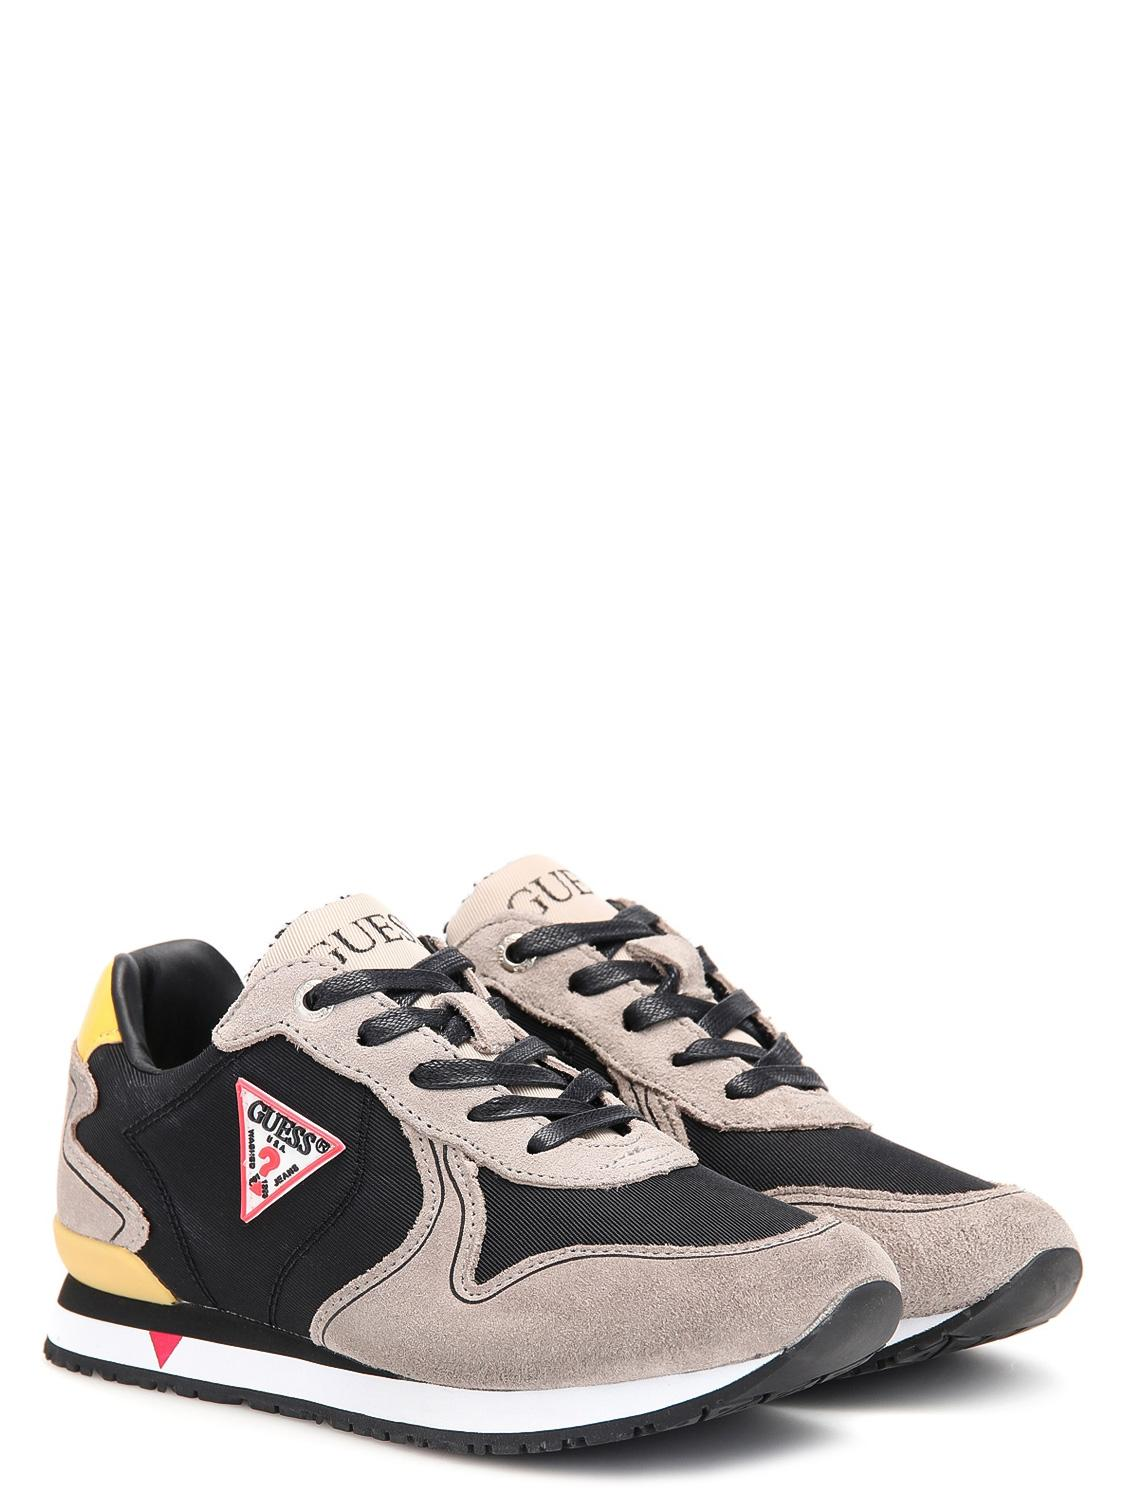 GUESS sneakers black for boys  NICKIS.com